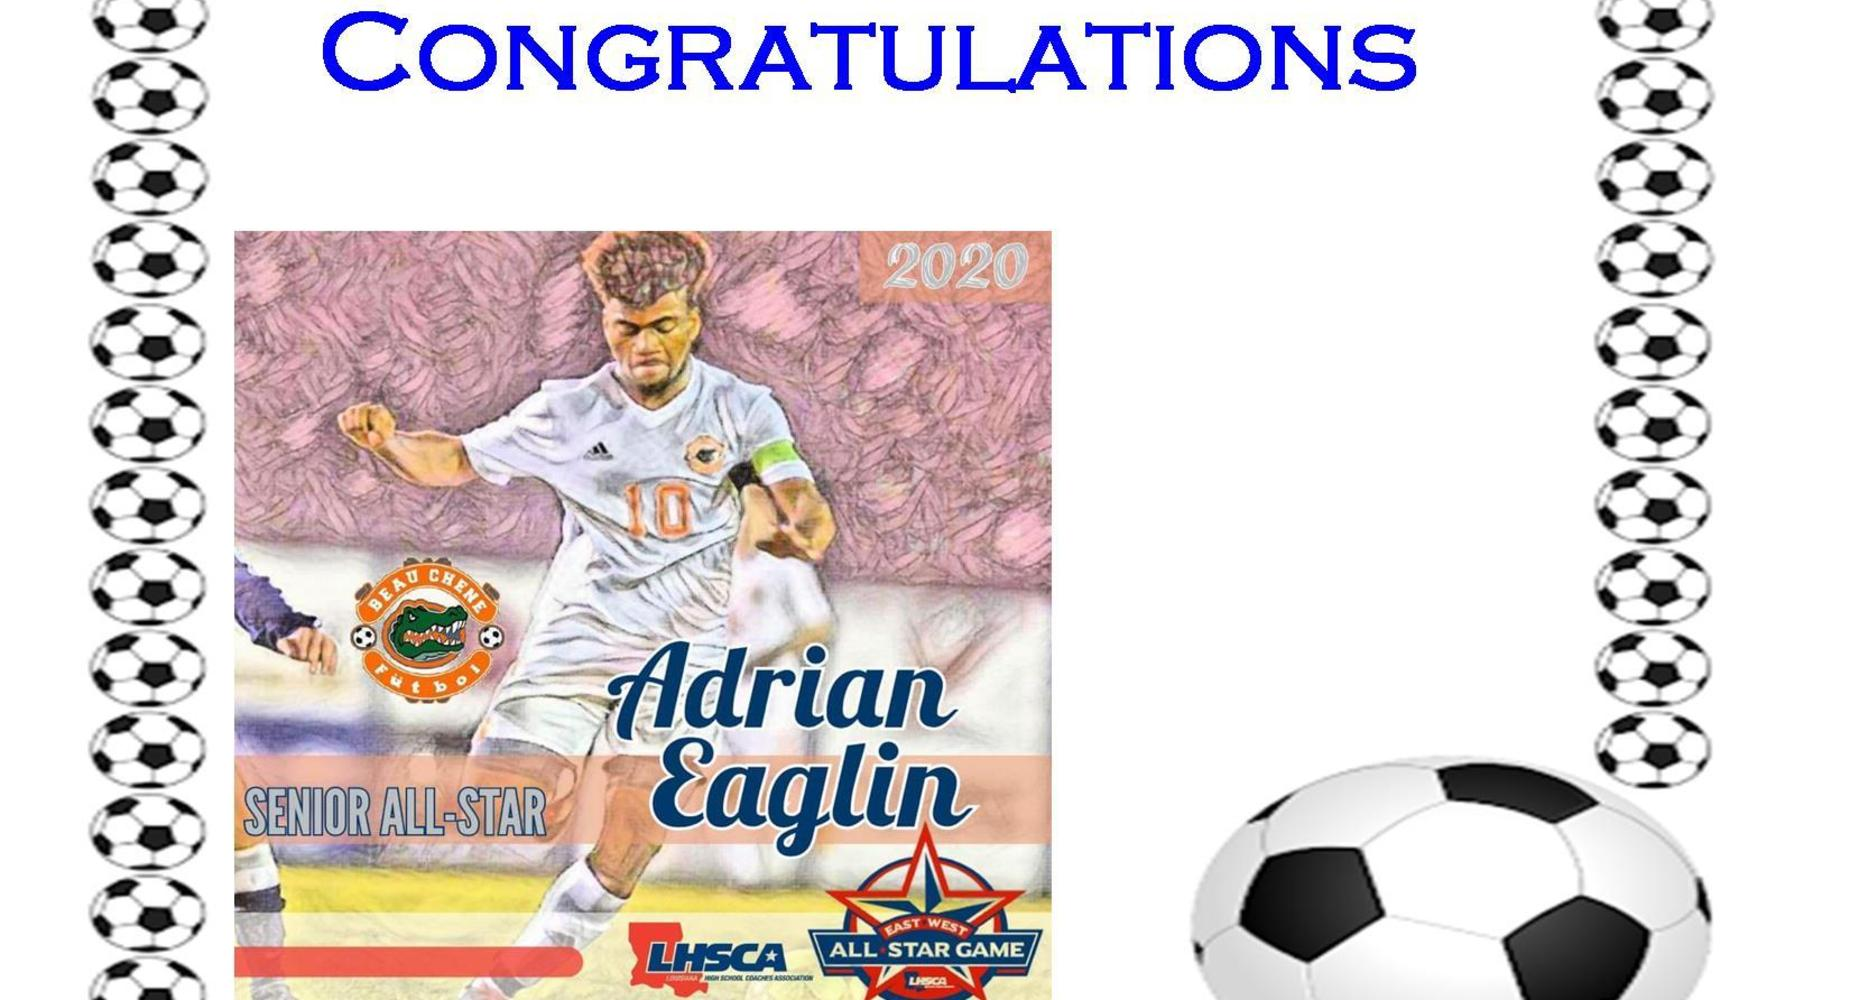 Senior Soccer Player Adrian Eaglin is a 2020 Senior All Star